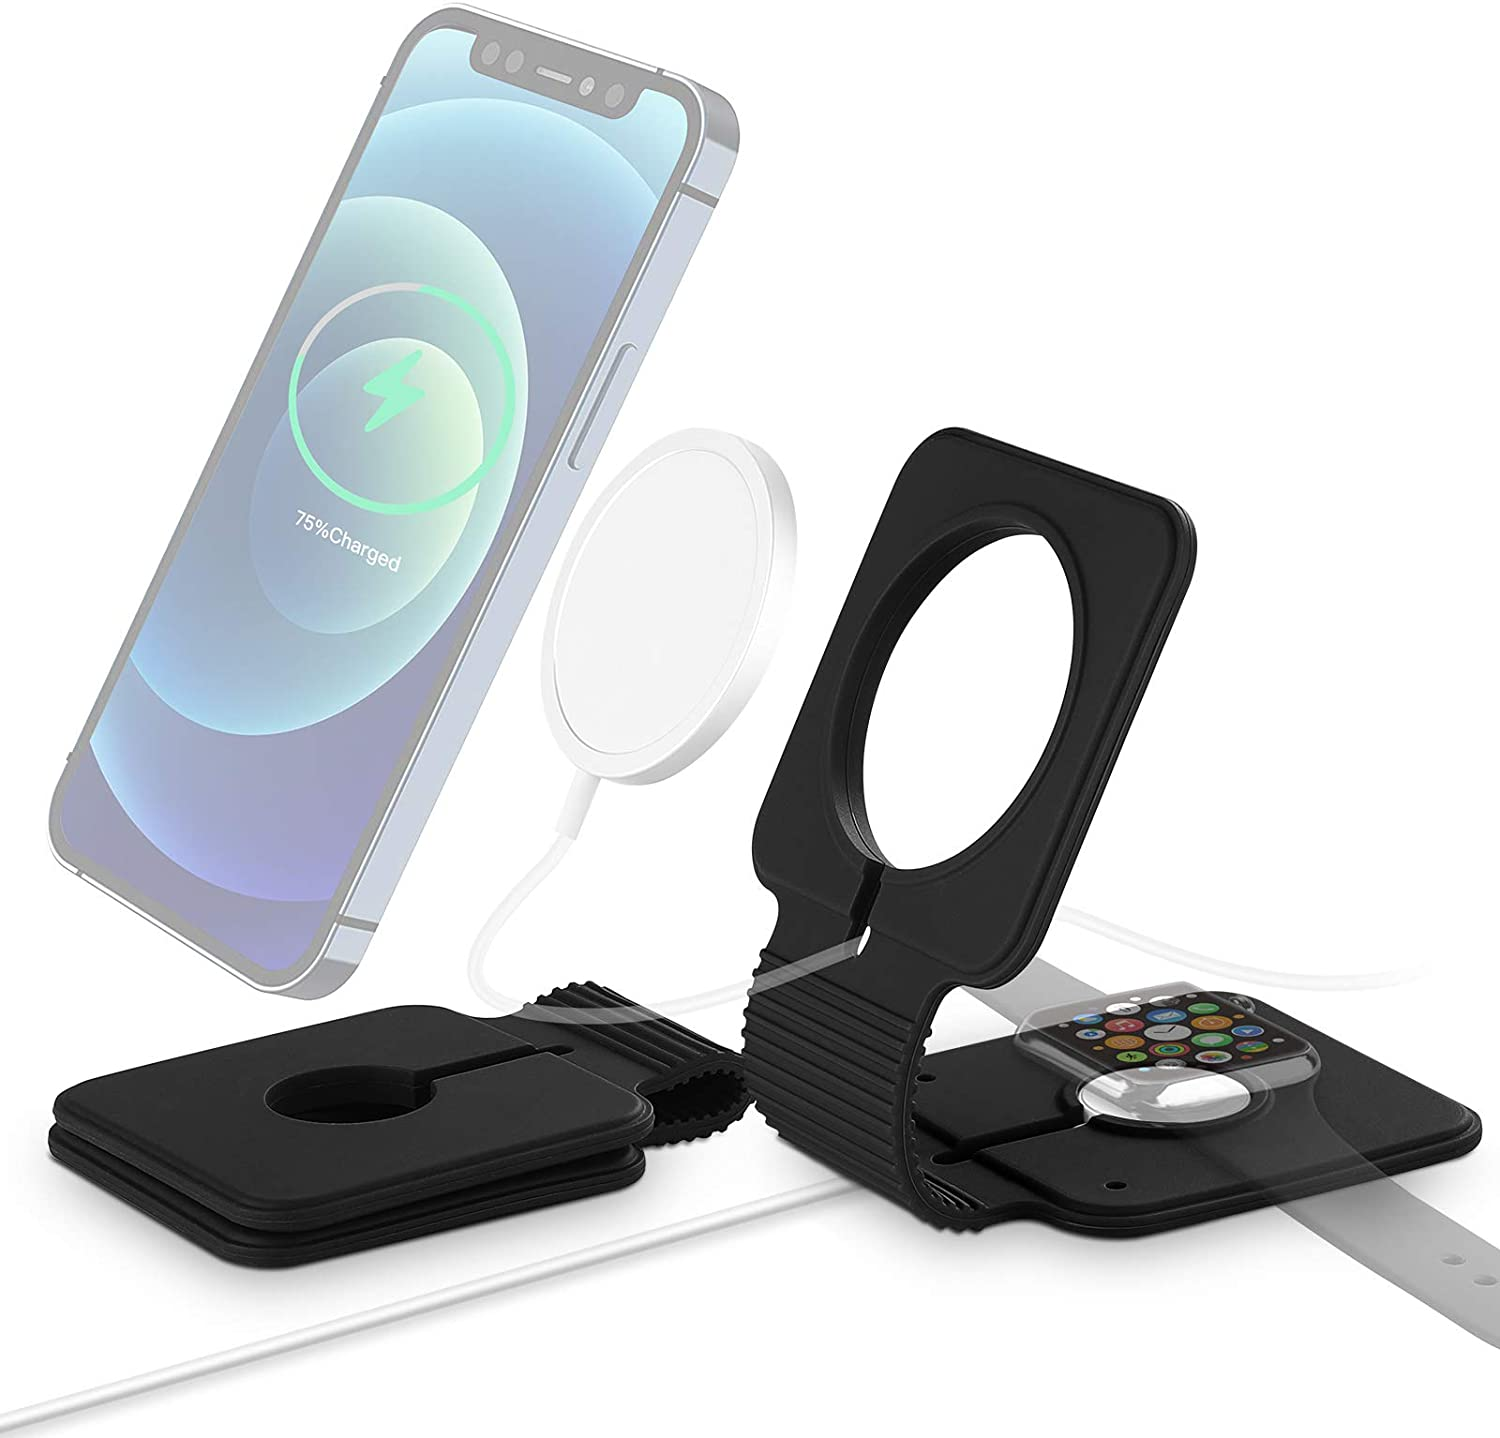 ABCOOL Bendable Phone Stand for Magnetic MagSafe Charger Compatible with iPhone 12 and Watch, 2in1 Adjustable Anti-Slip Silicone Phone Holder